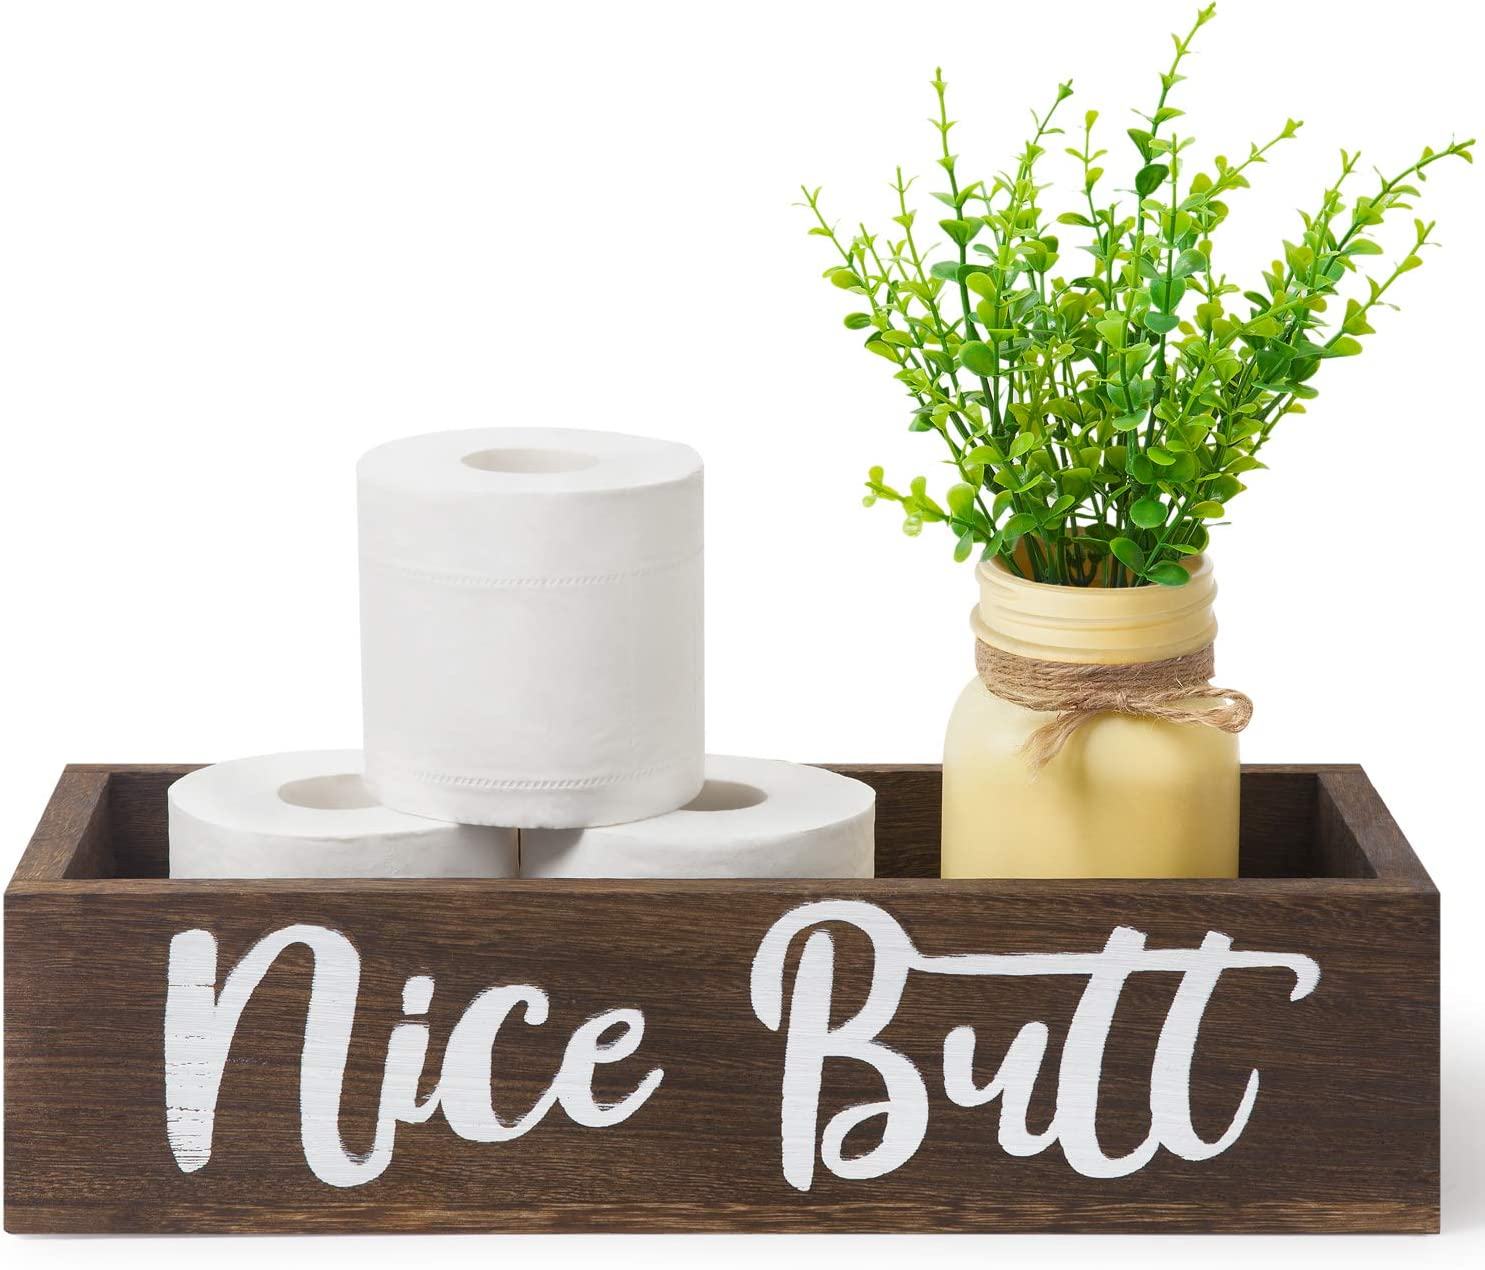 Dahey Nice Butt Bathroom Decor Box, Toilet Paper Holder, Farmhouse Rustic Wood Box Funny Home Decor for Bathroom Kitchen (Mason Jar and Artificial Flower Included), Brown